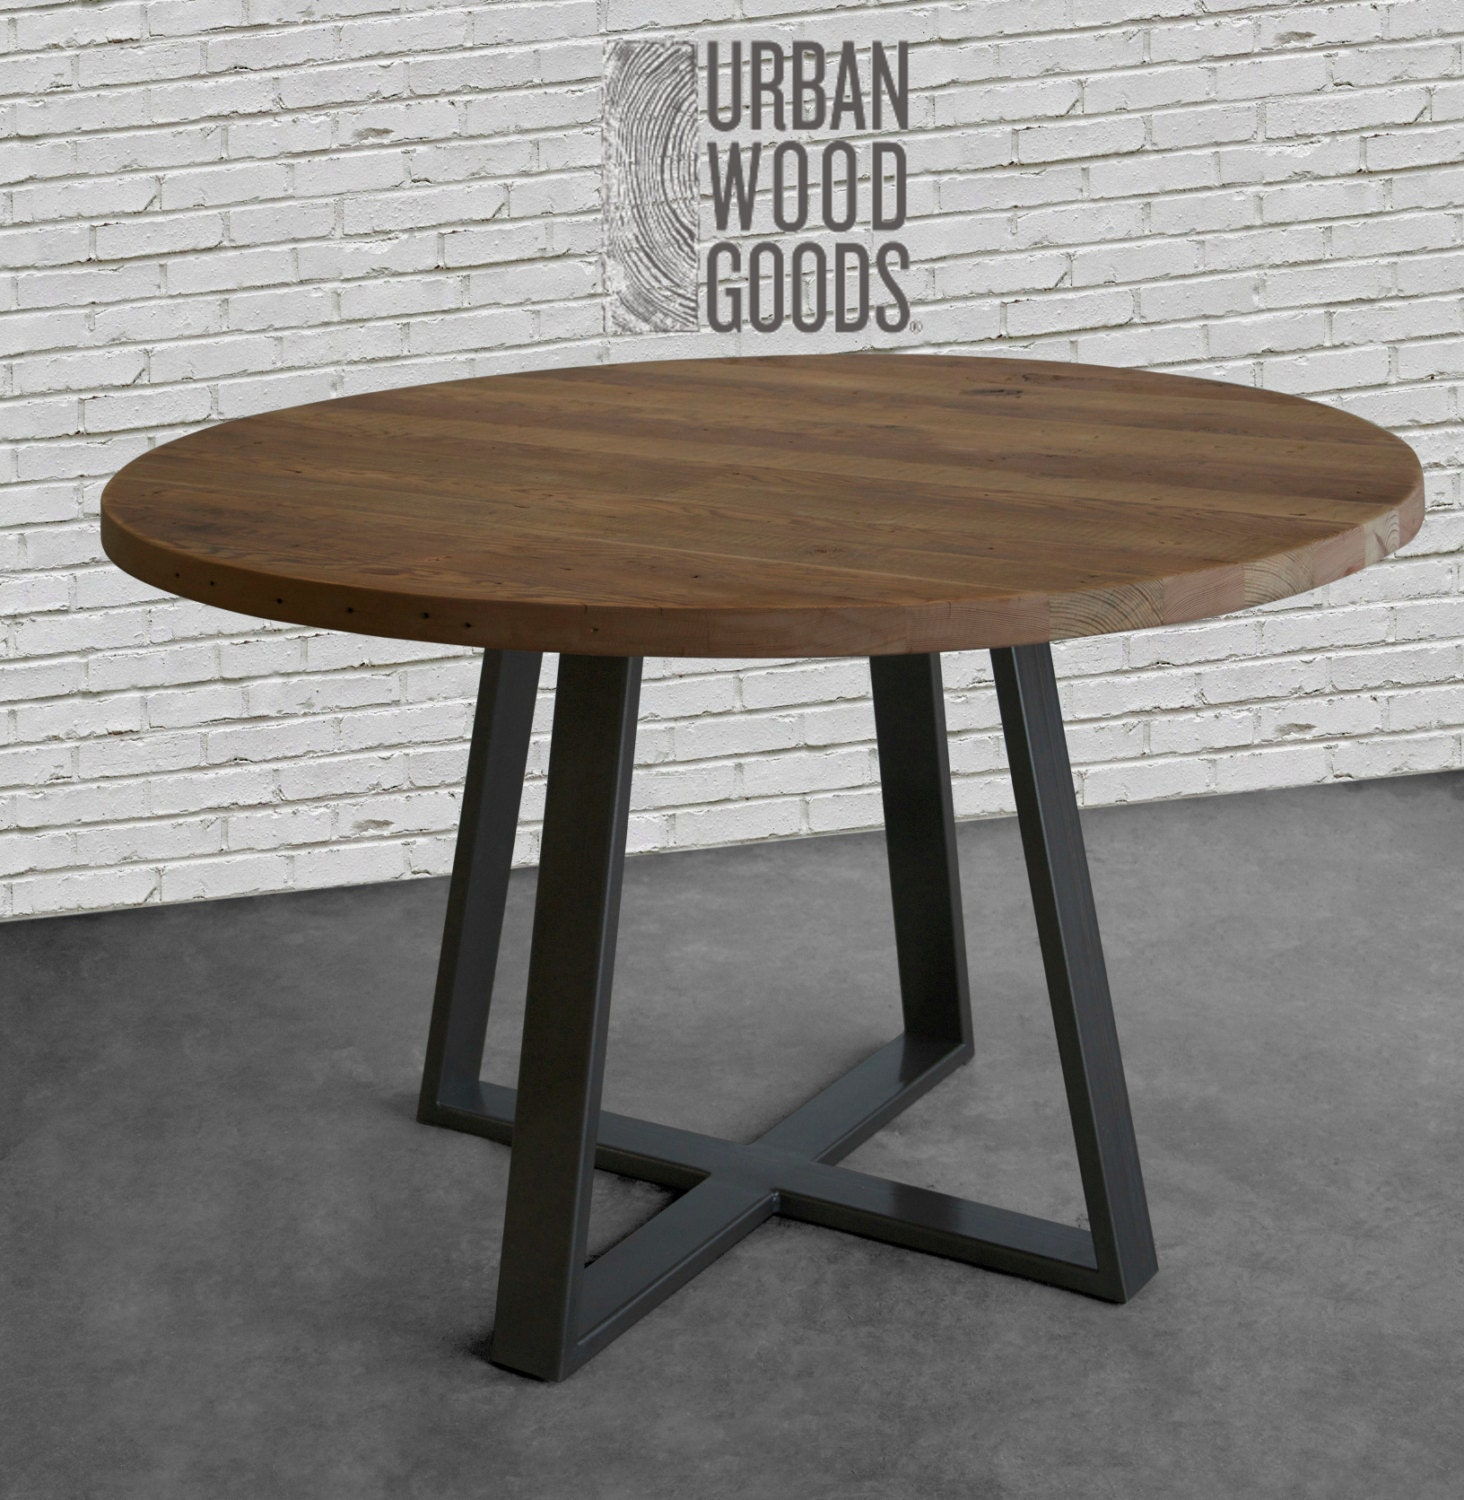 Greenwich Round Coffee Table Choice Of Size: Round Dining Table In Reclaimed Wood And Steel Legs In Your